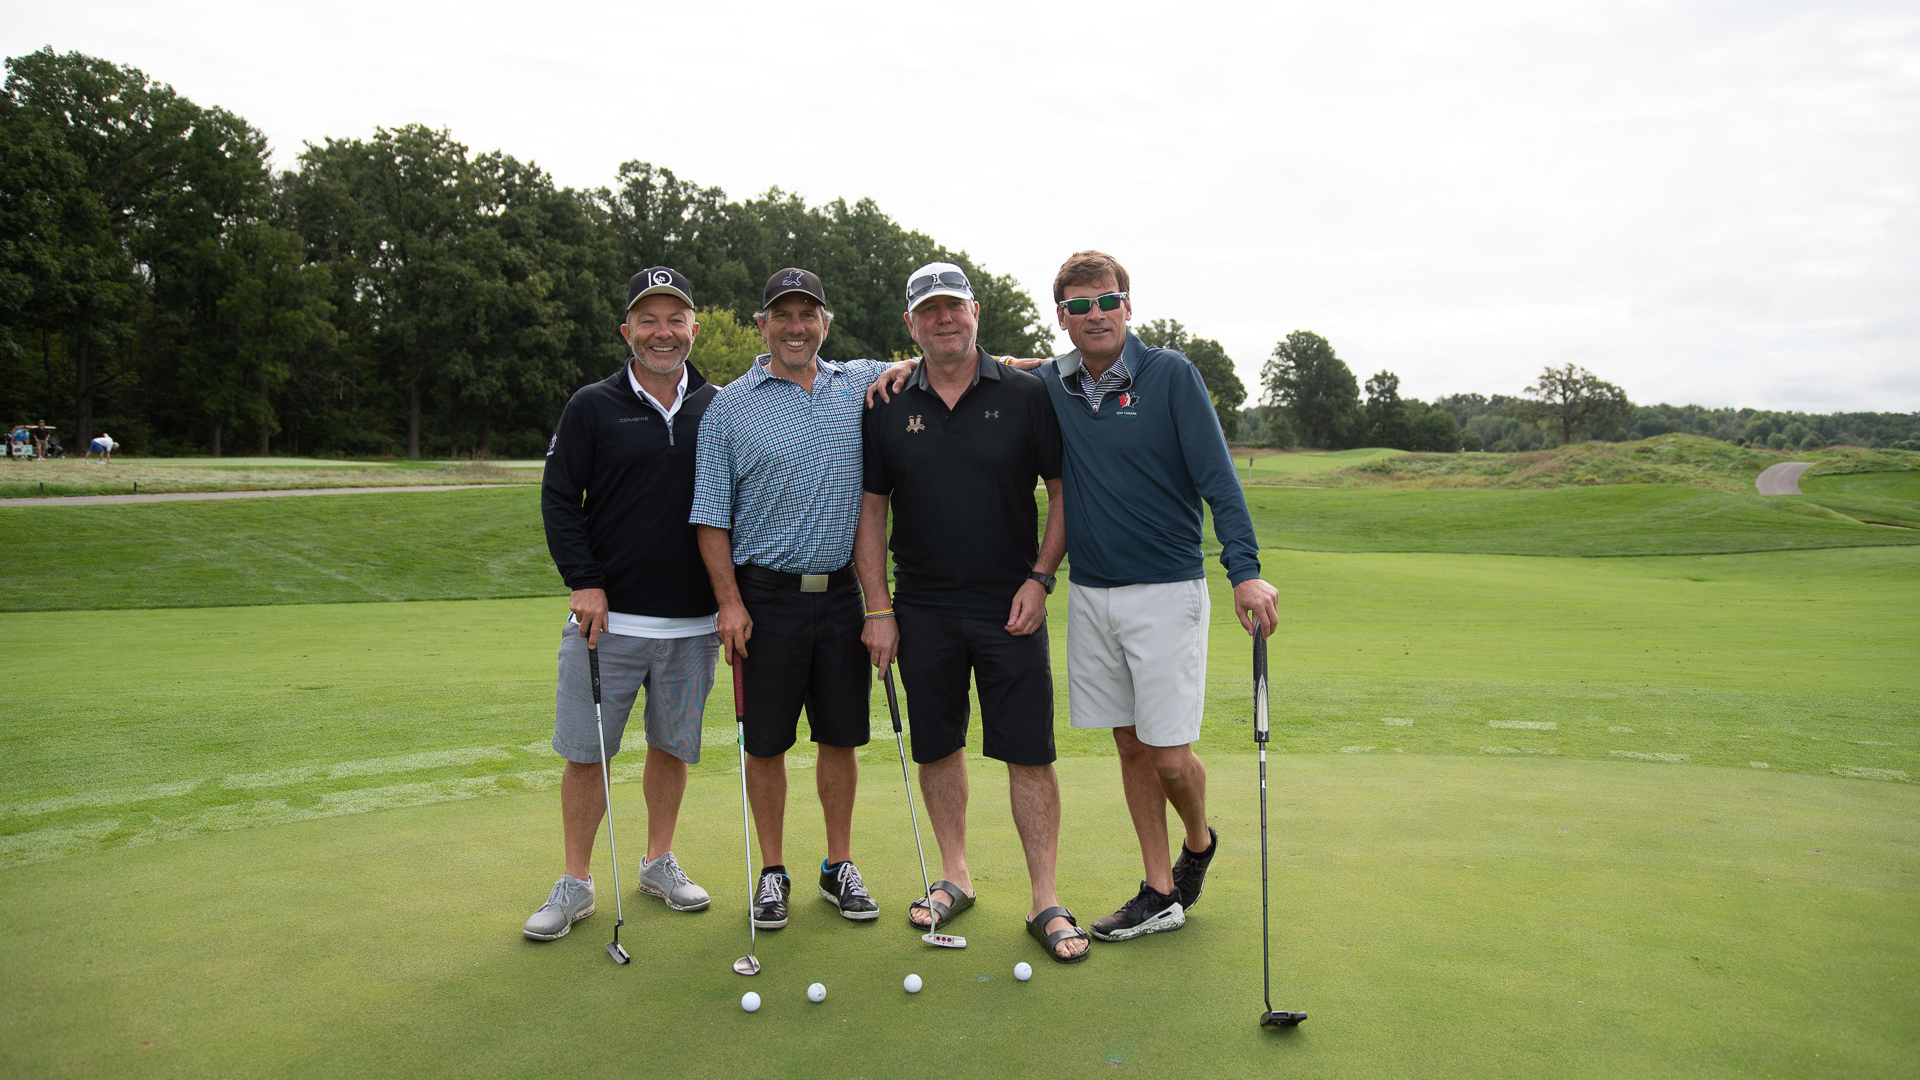 Group of four men standing on golf course with clubs, smiling